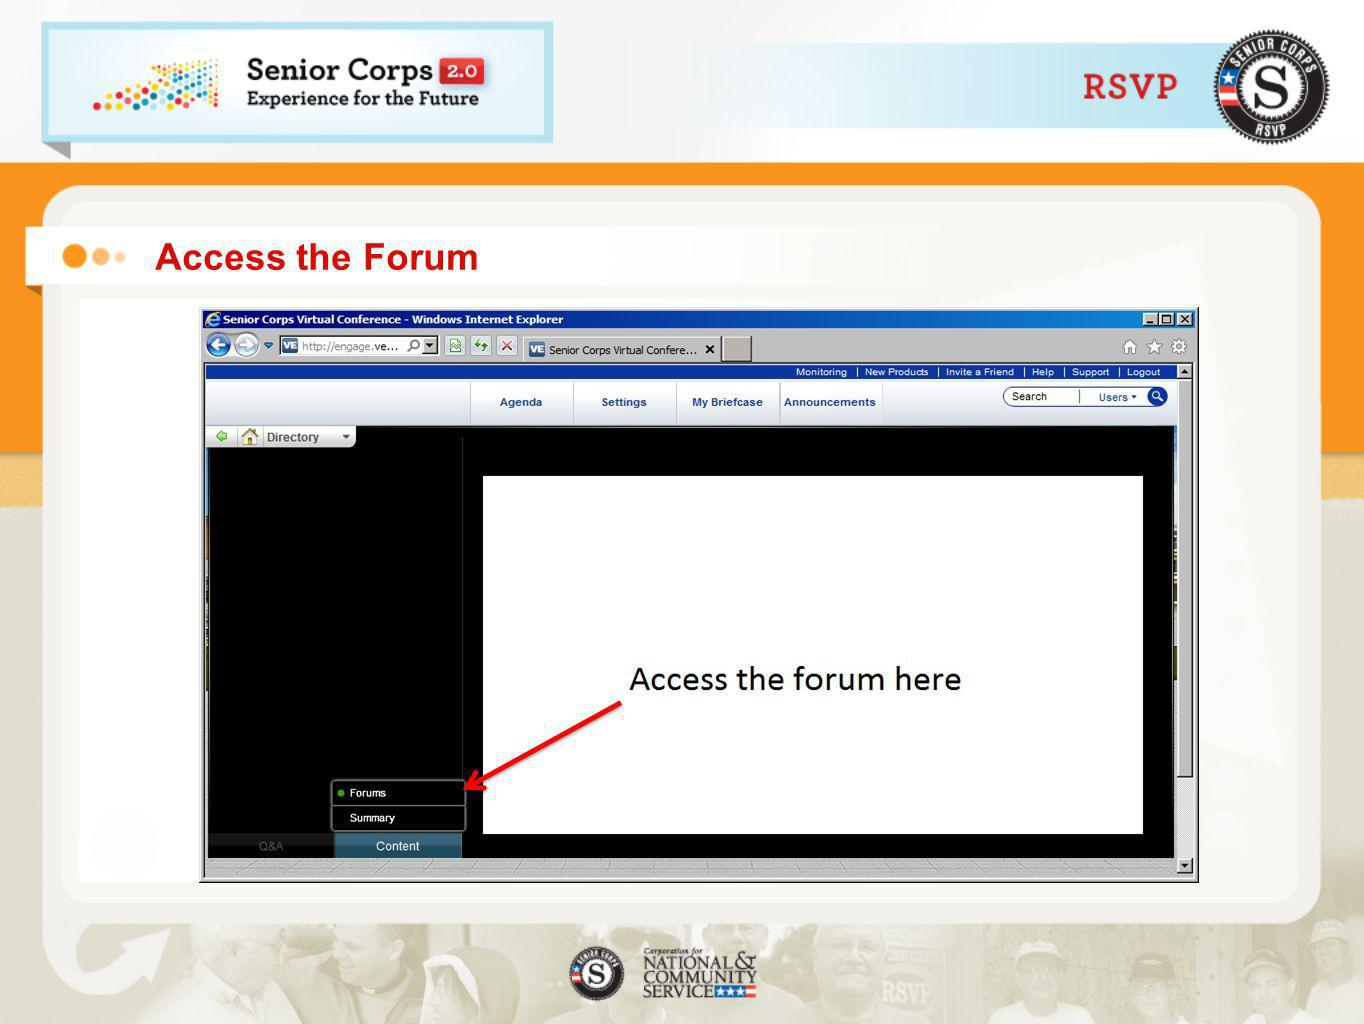 Access the Forum